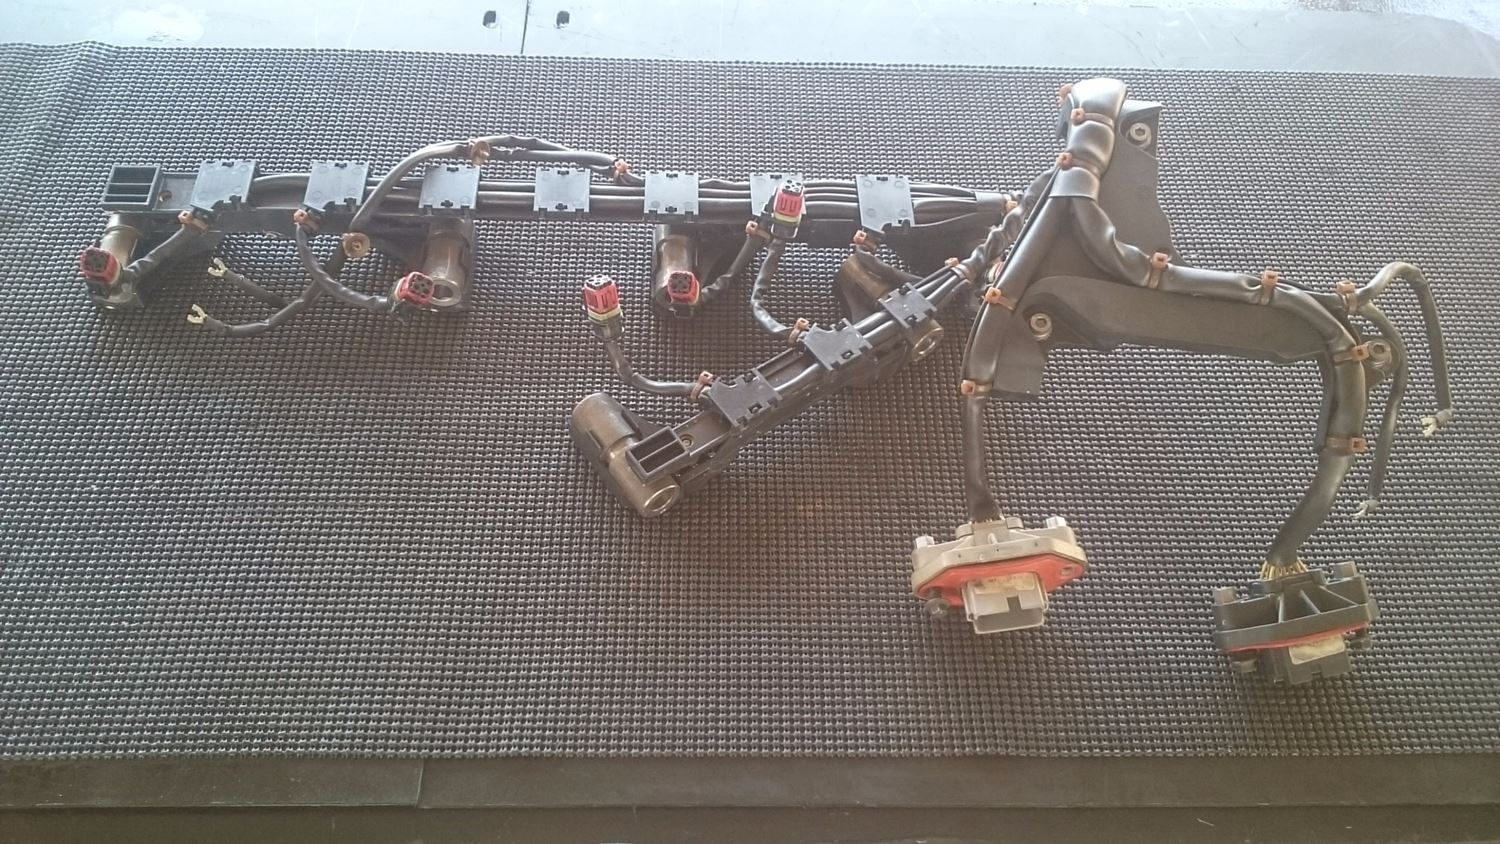 Detroit Series 60 14.0L DDEC V Wiring Harnesses 80946178 yIaKS9ZQJyio_f?h=60&w=100&crop=auto wiring harnesses new and used parts american truck chrome 60 series detroit engine ecm harness wiring at n-0.co